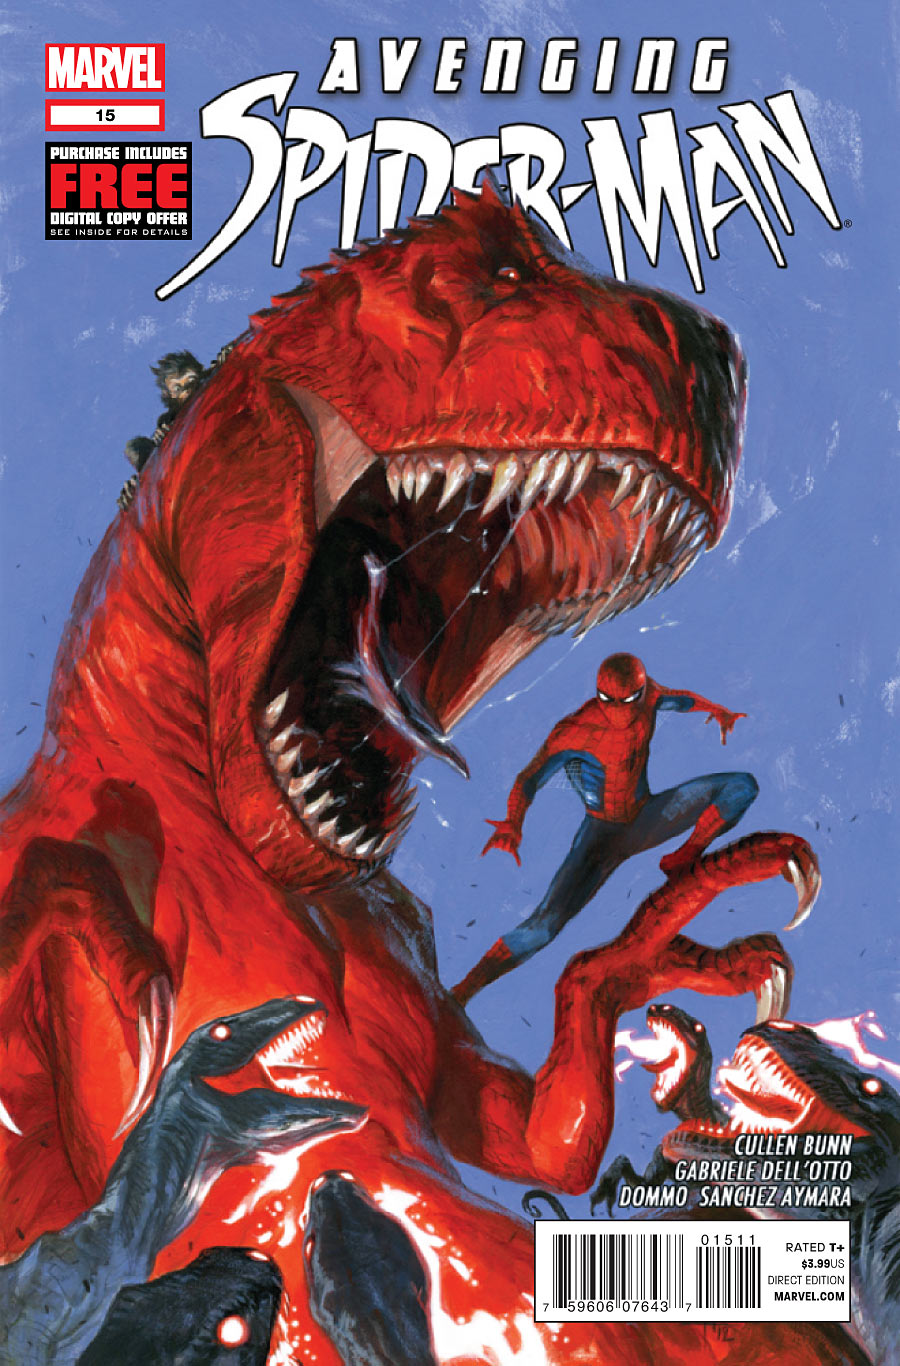 Avenging Spider Man 15 C Avenging Spider Man #15 Review